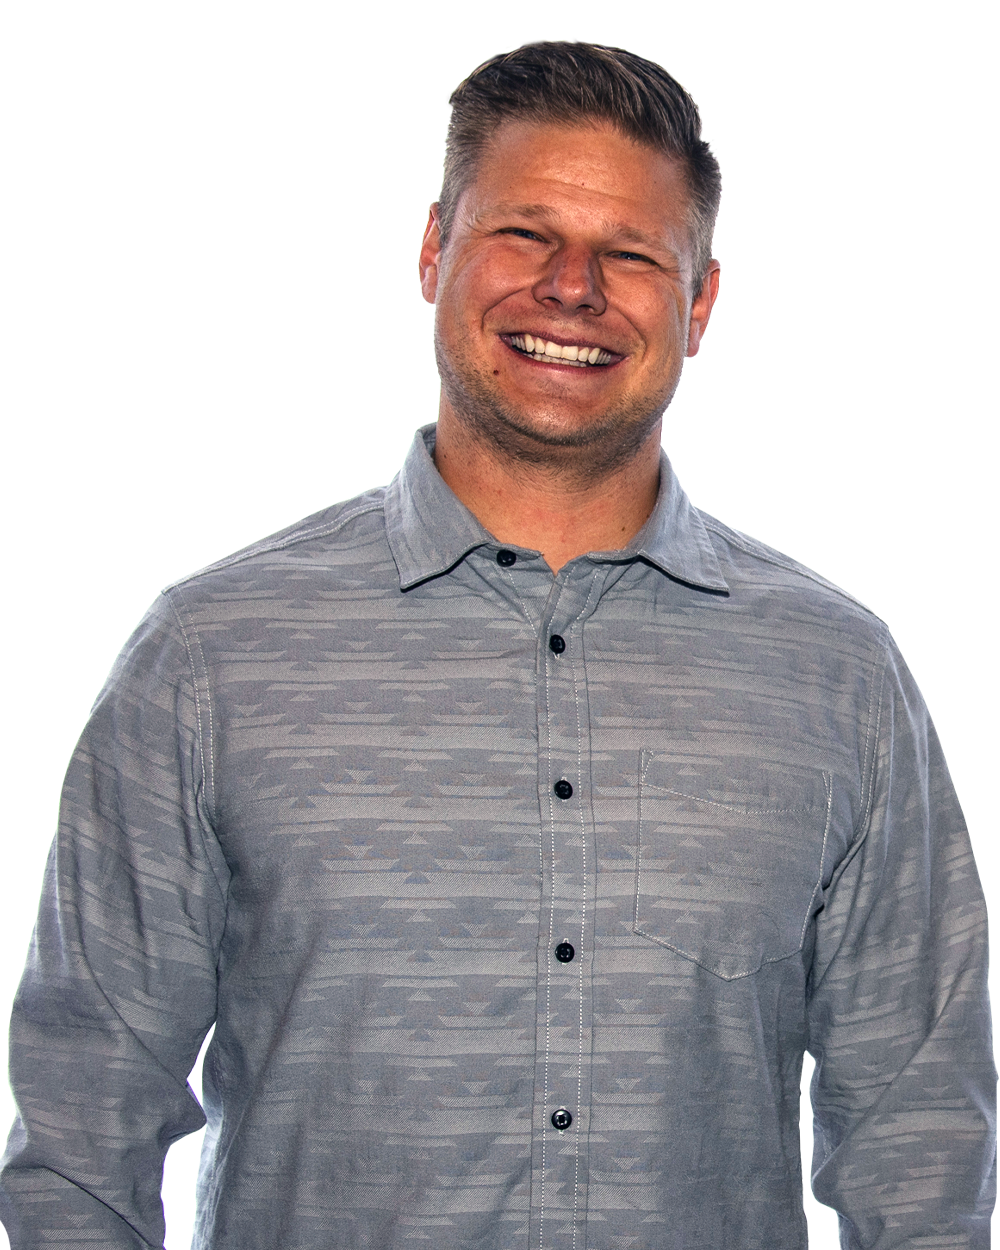 cody transparent - About